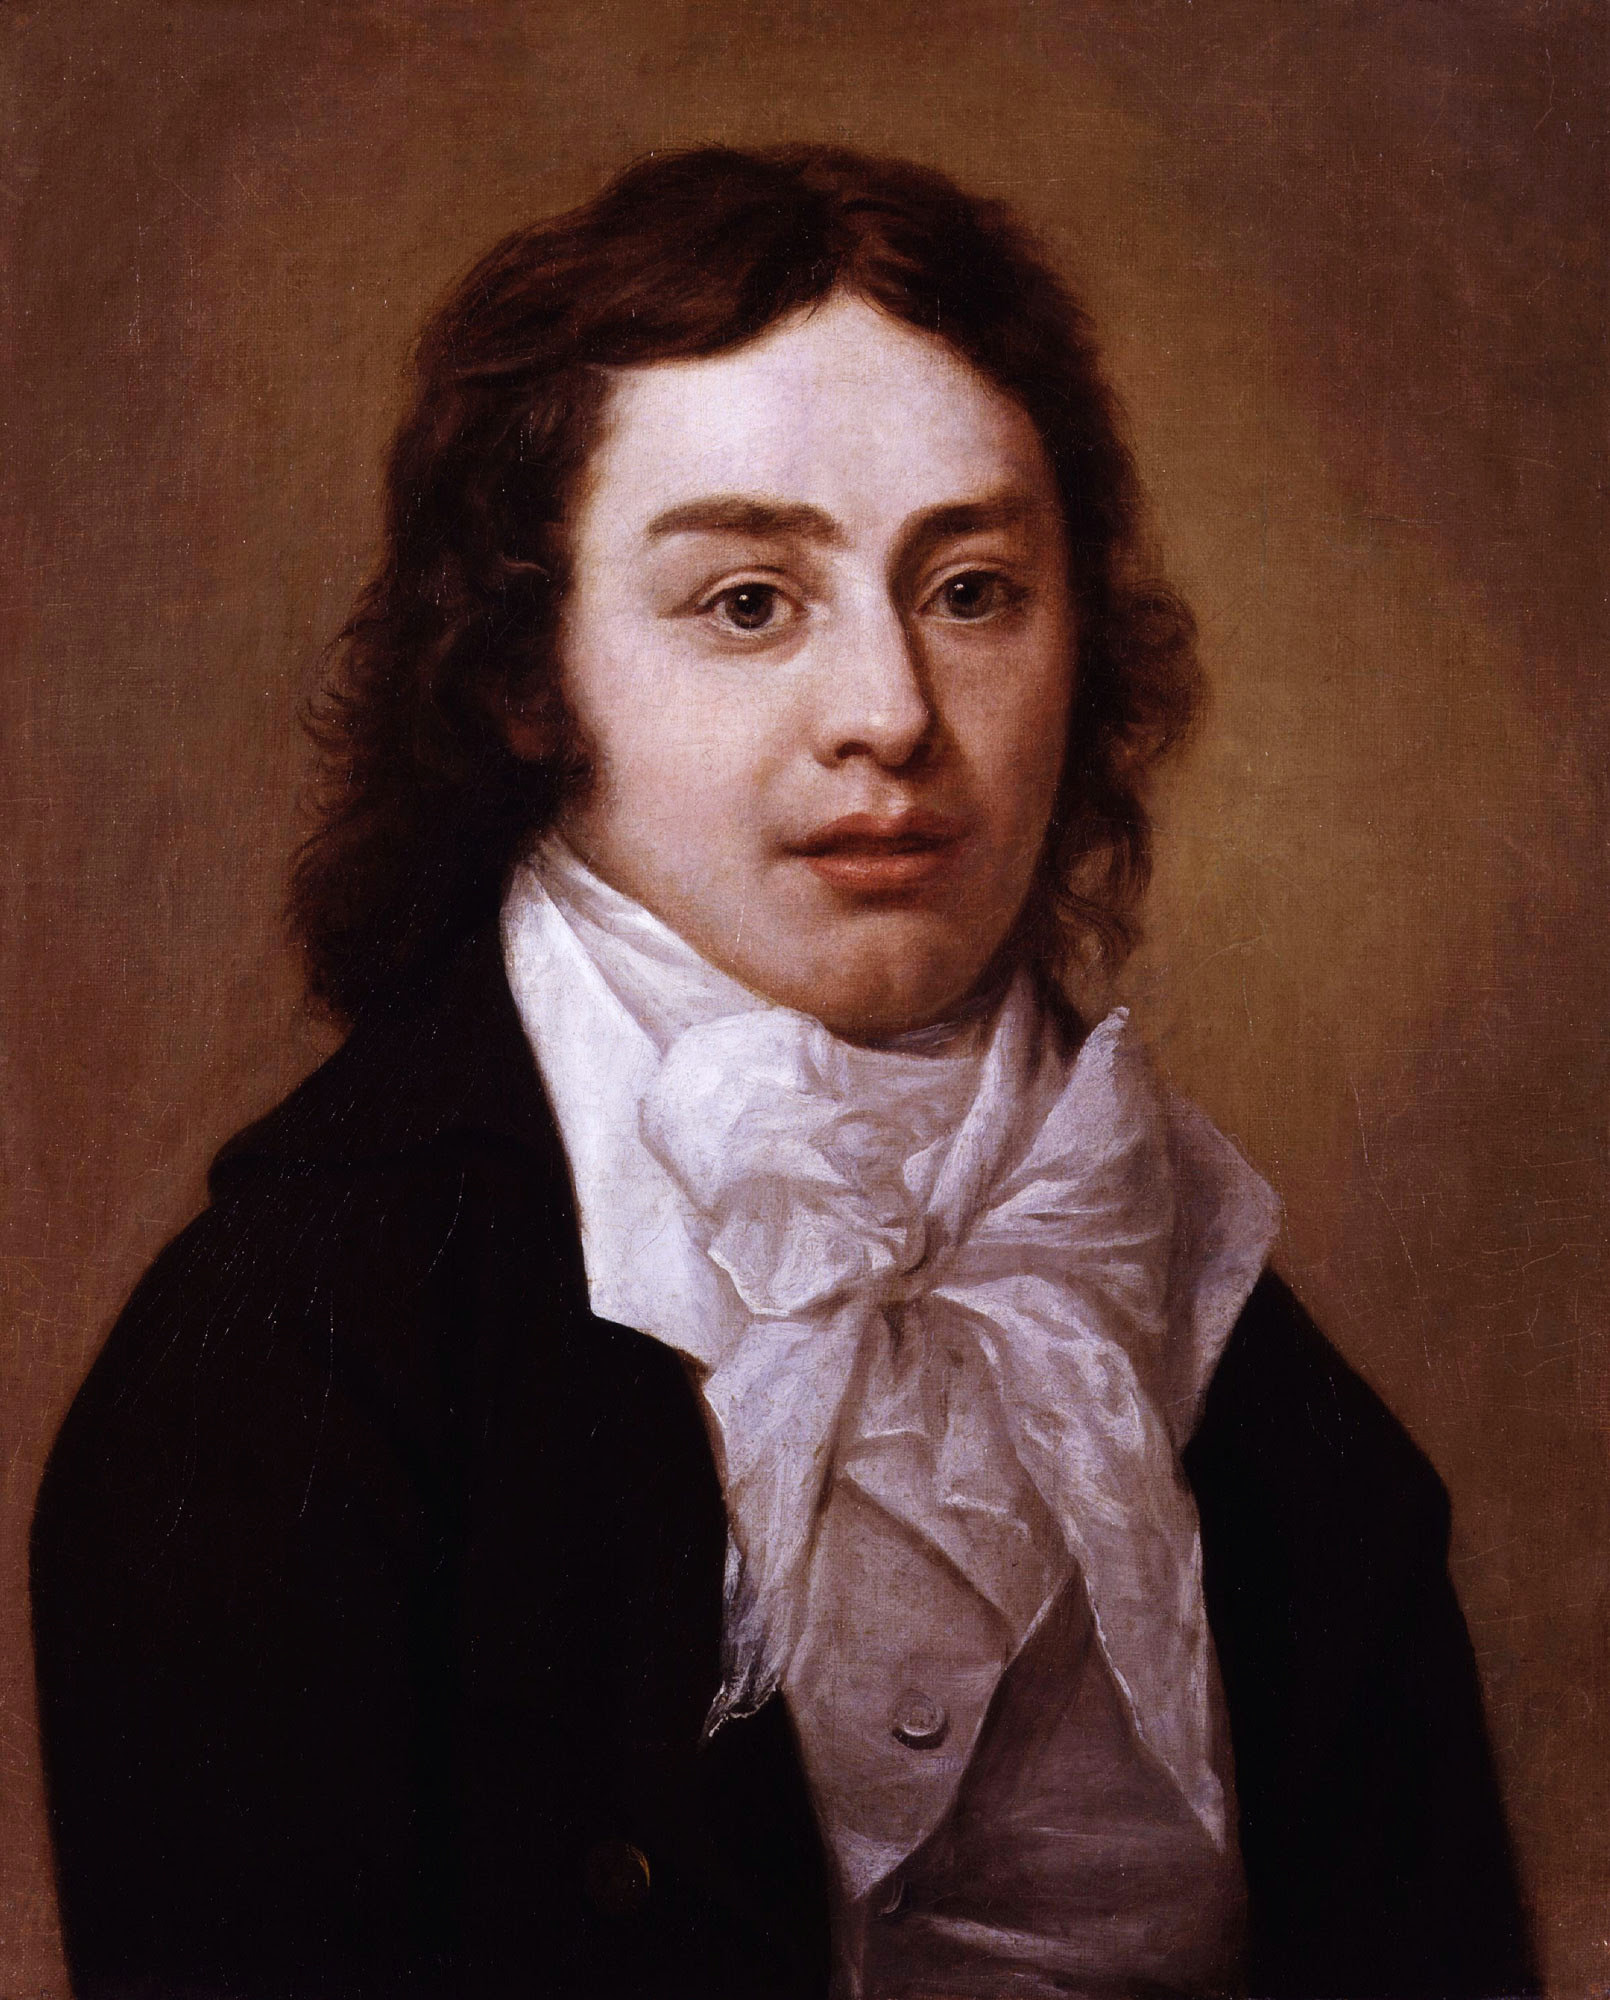 http://upload.wikimedia.org/wikipedia/commons/9/91/SamuelTaylorColeridge.jpg